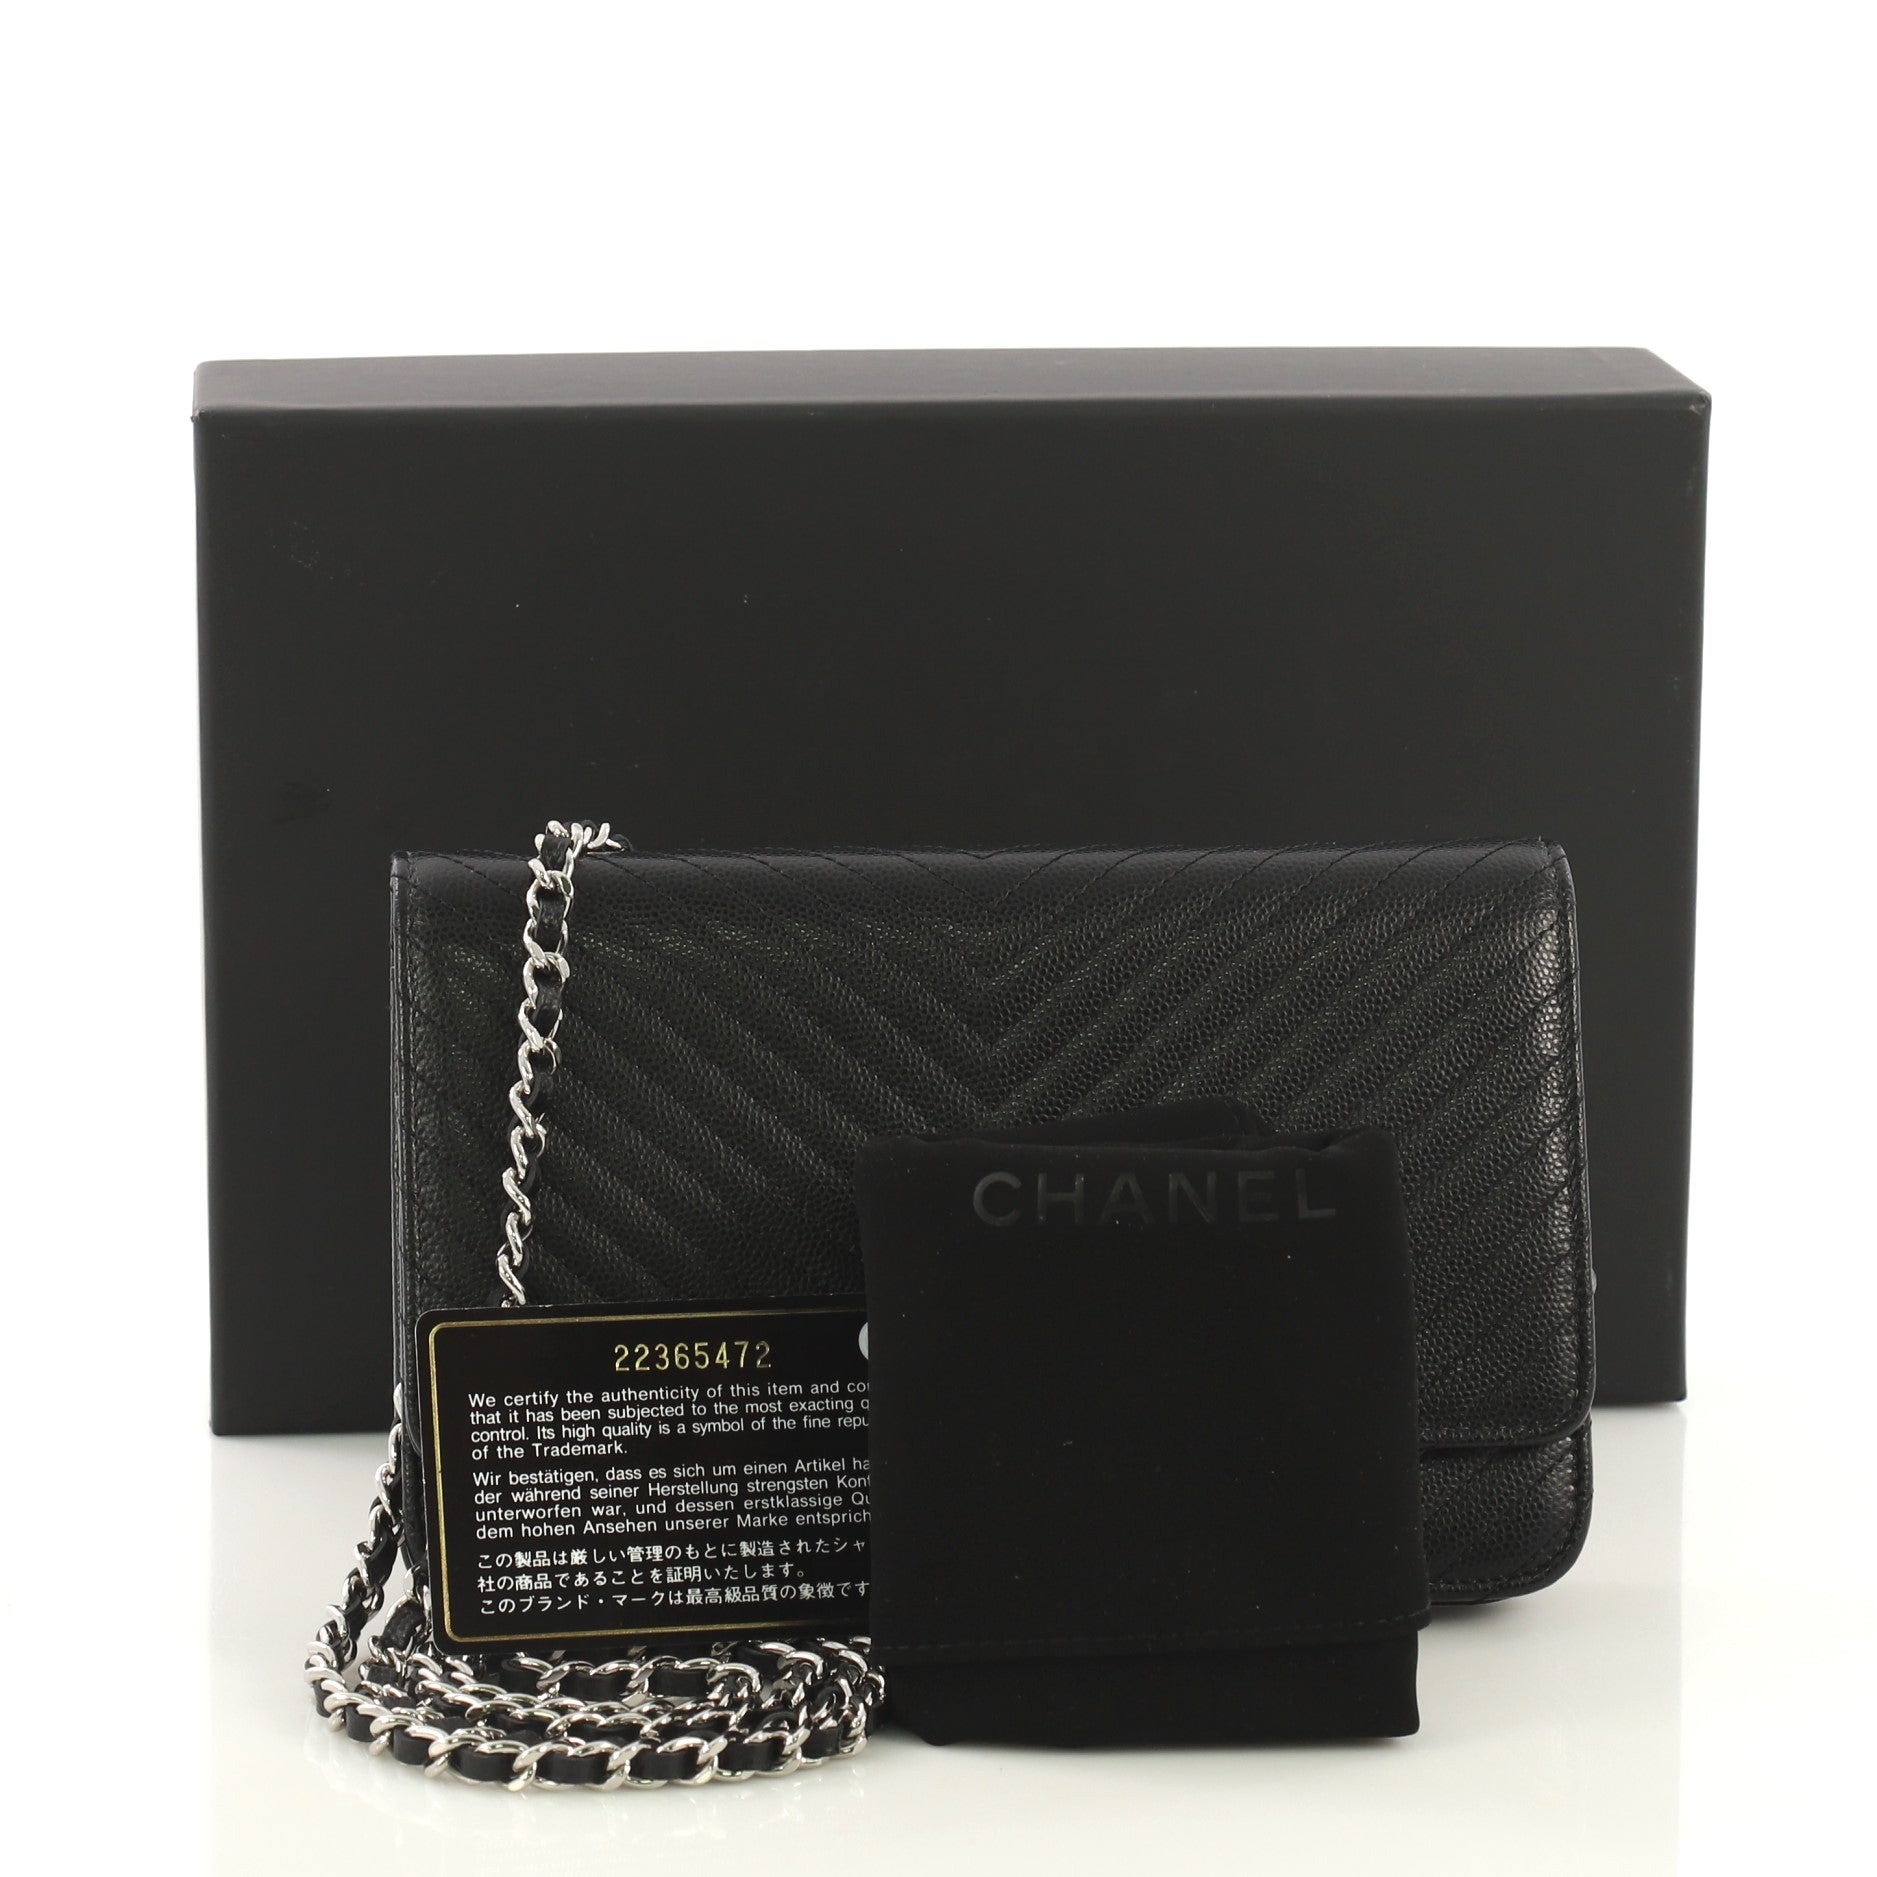 57dec80677a2 Chanel Wallet on Chain Chevron Caviar at 1stdibs